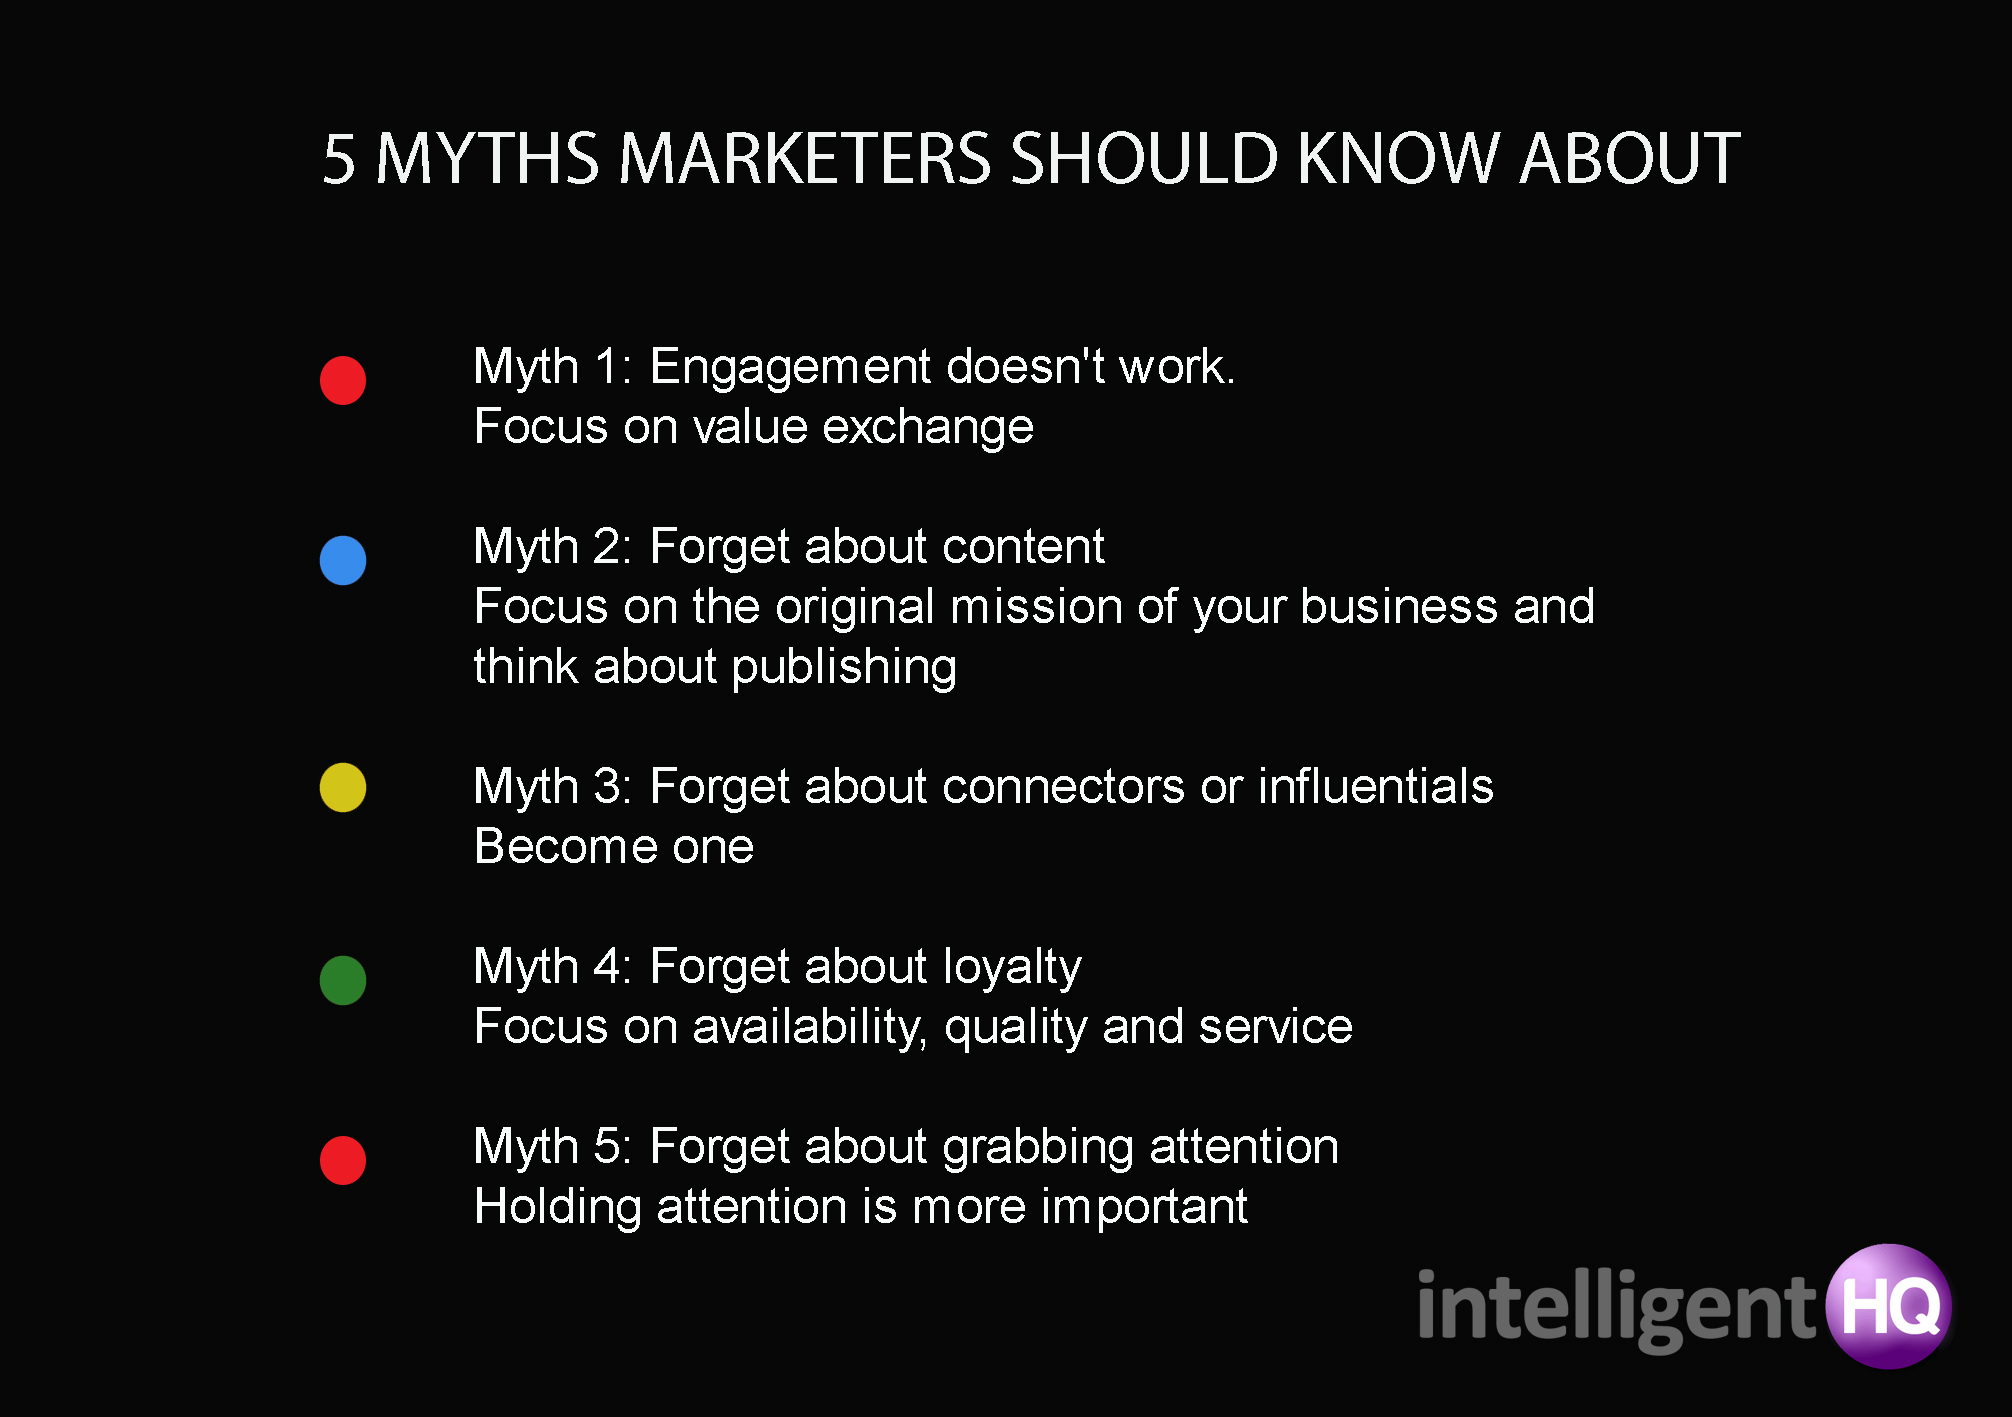 5 Myths Marketers Should Know About Intelligenthq